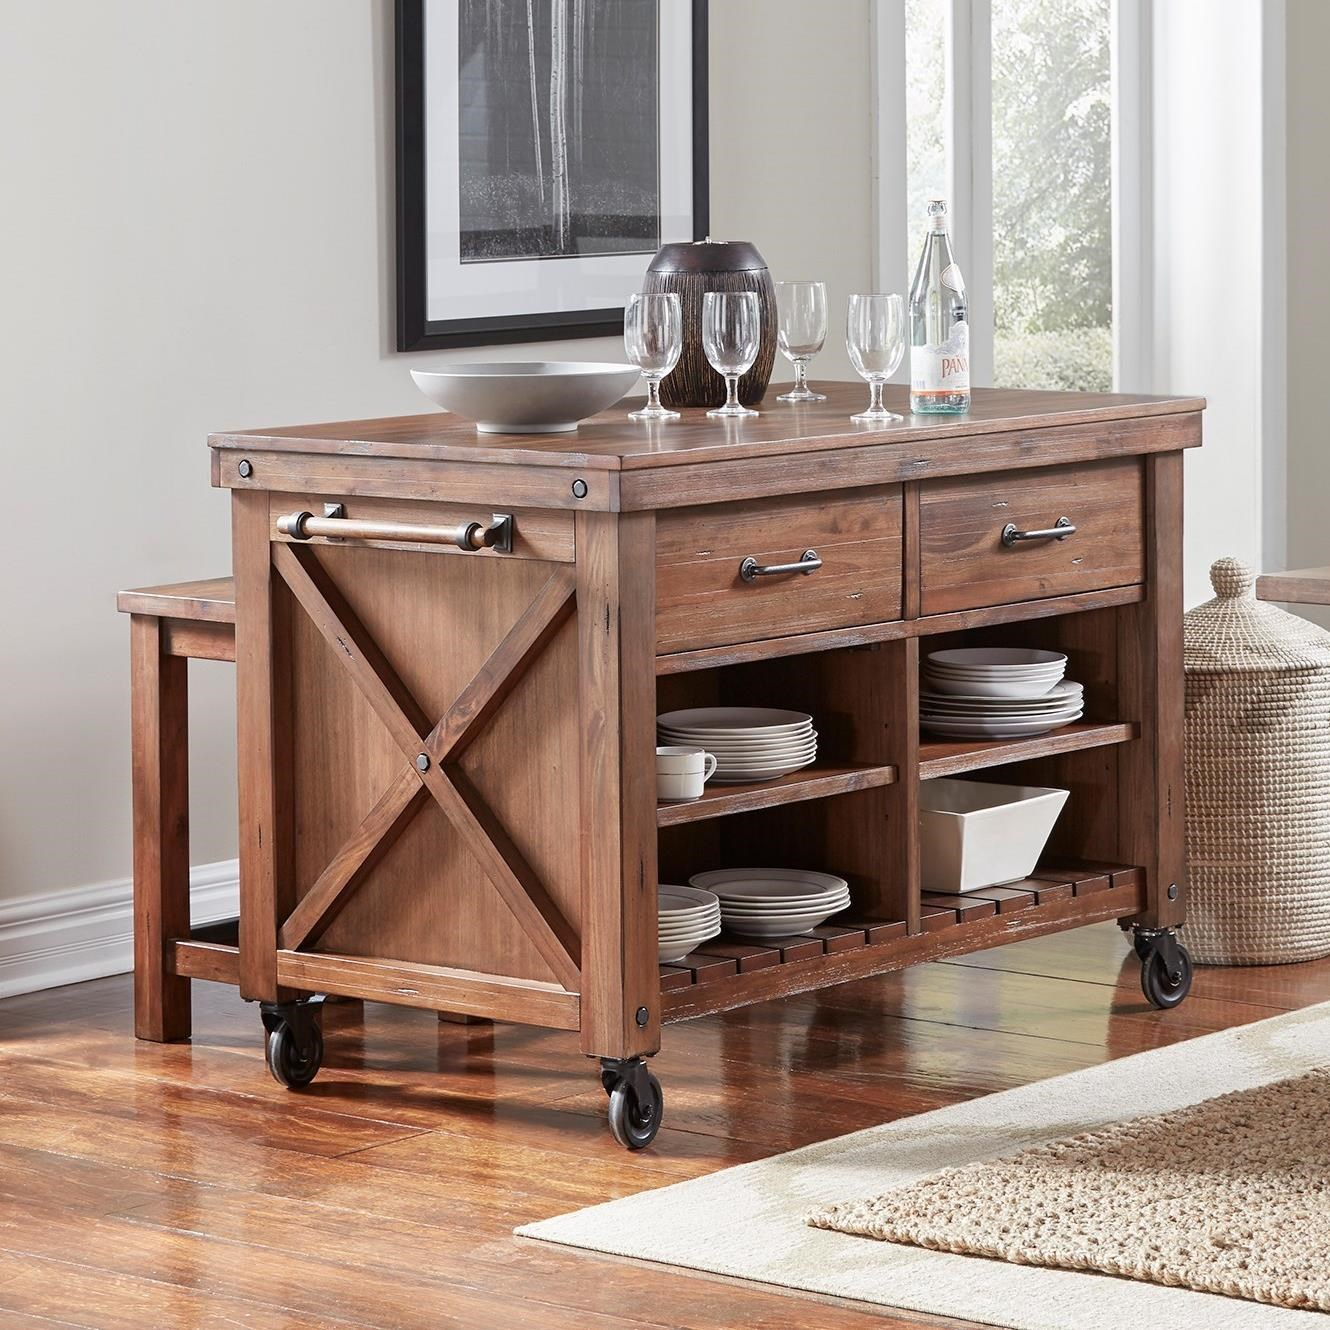 Aamerica Anacortes Kitchen Island With Wood Top And